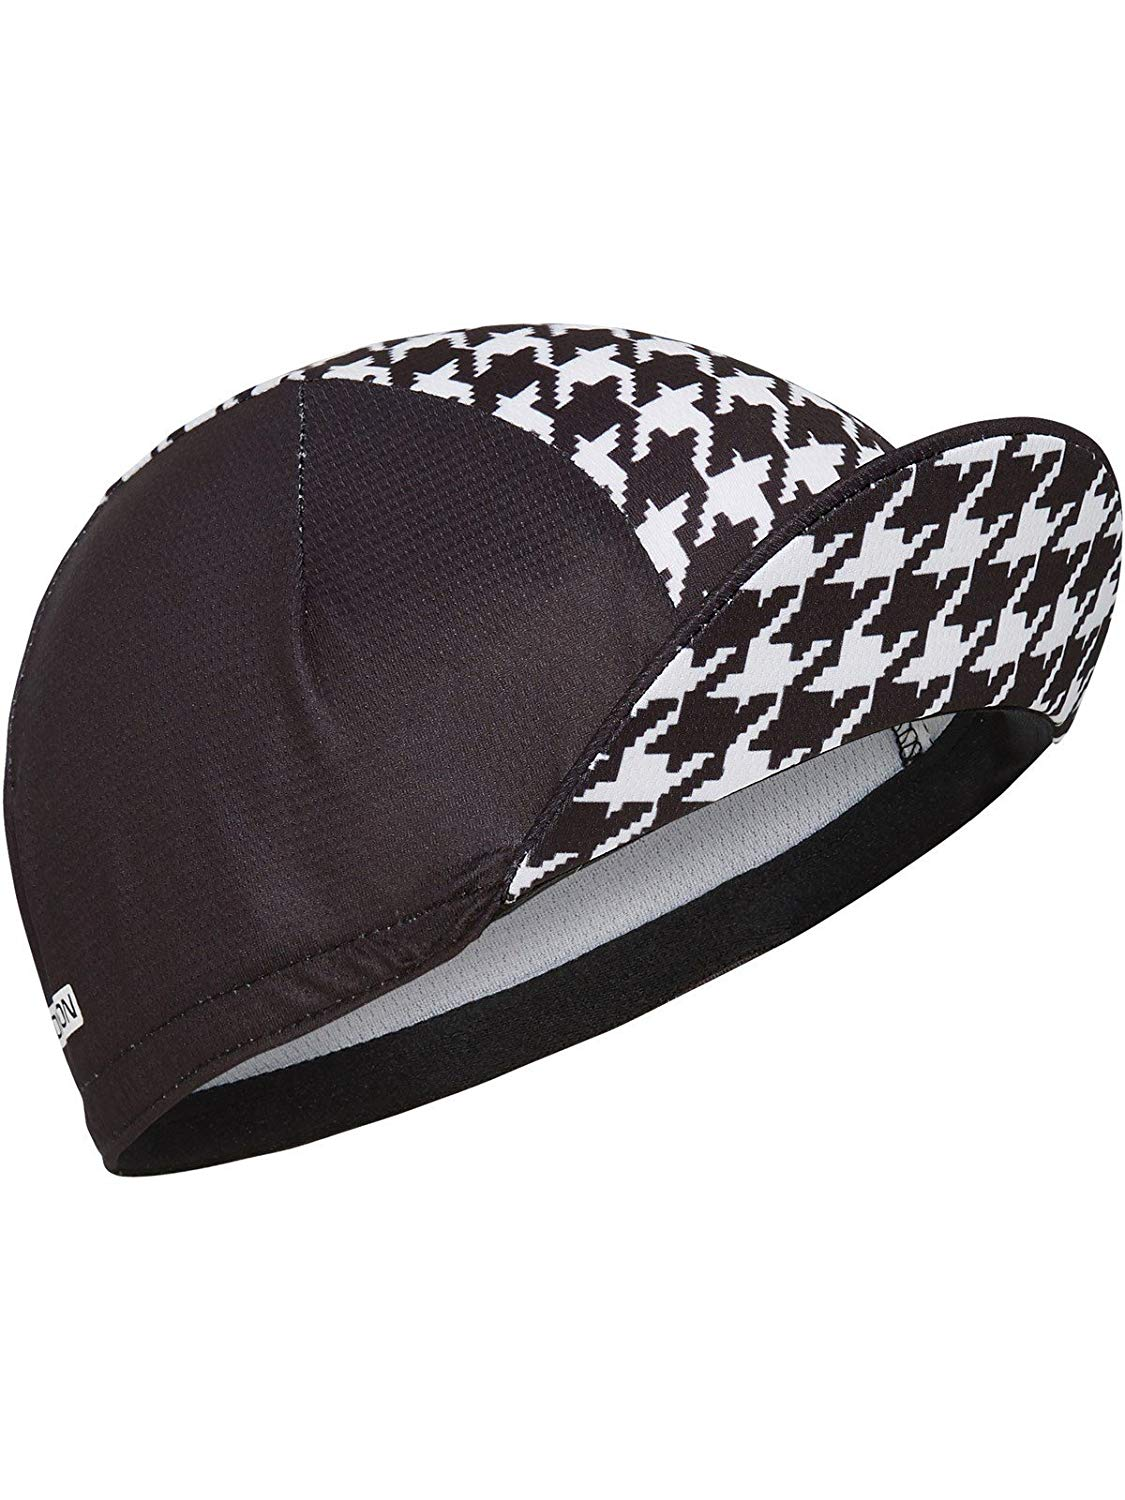 0a269fcf8a8f6 Get Quotations · Madison Houndstooth Black-White 2017 Roadrace Premio Cycling  Cap (Default